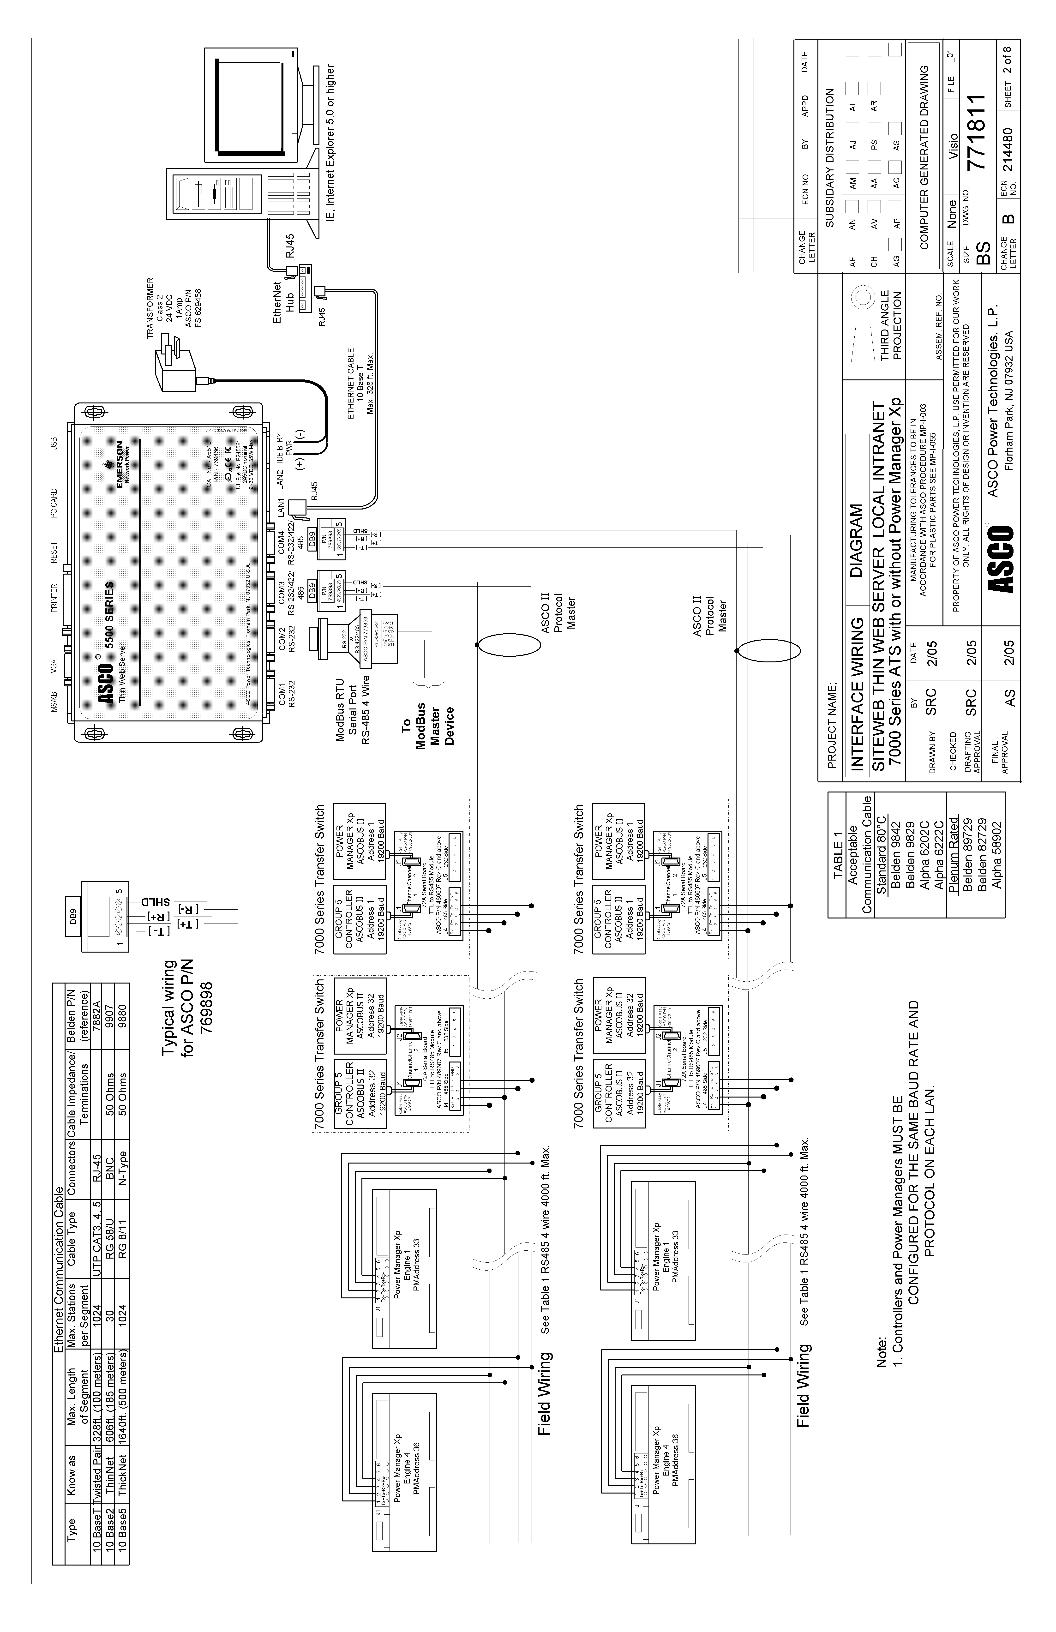 ats electrical wiring diagram